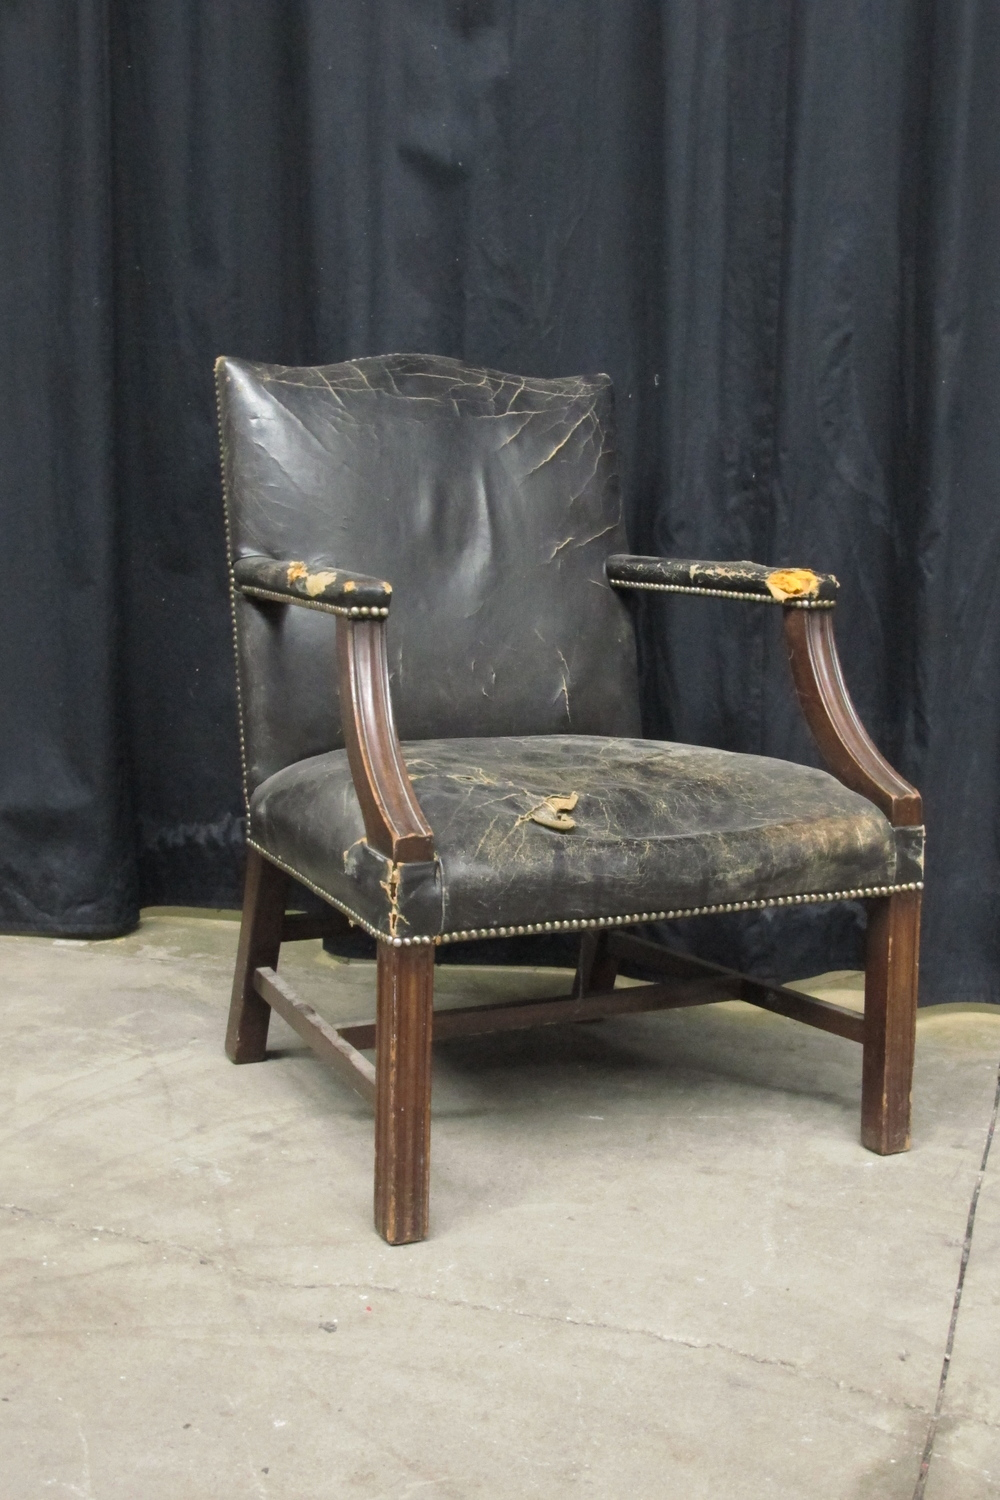 lack Leather Armchair $150